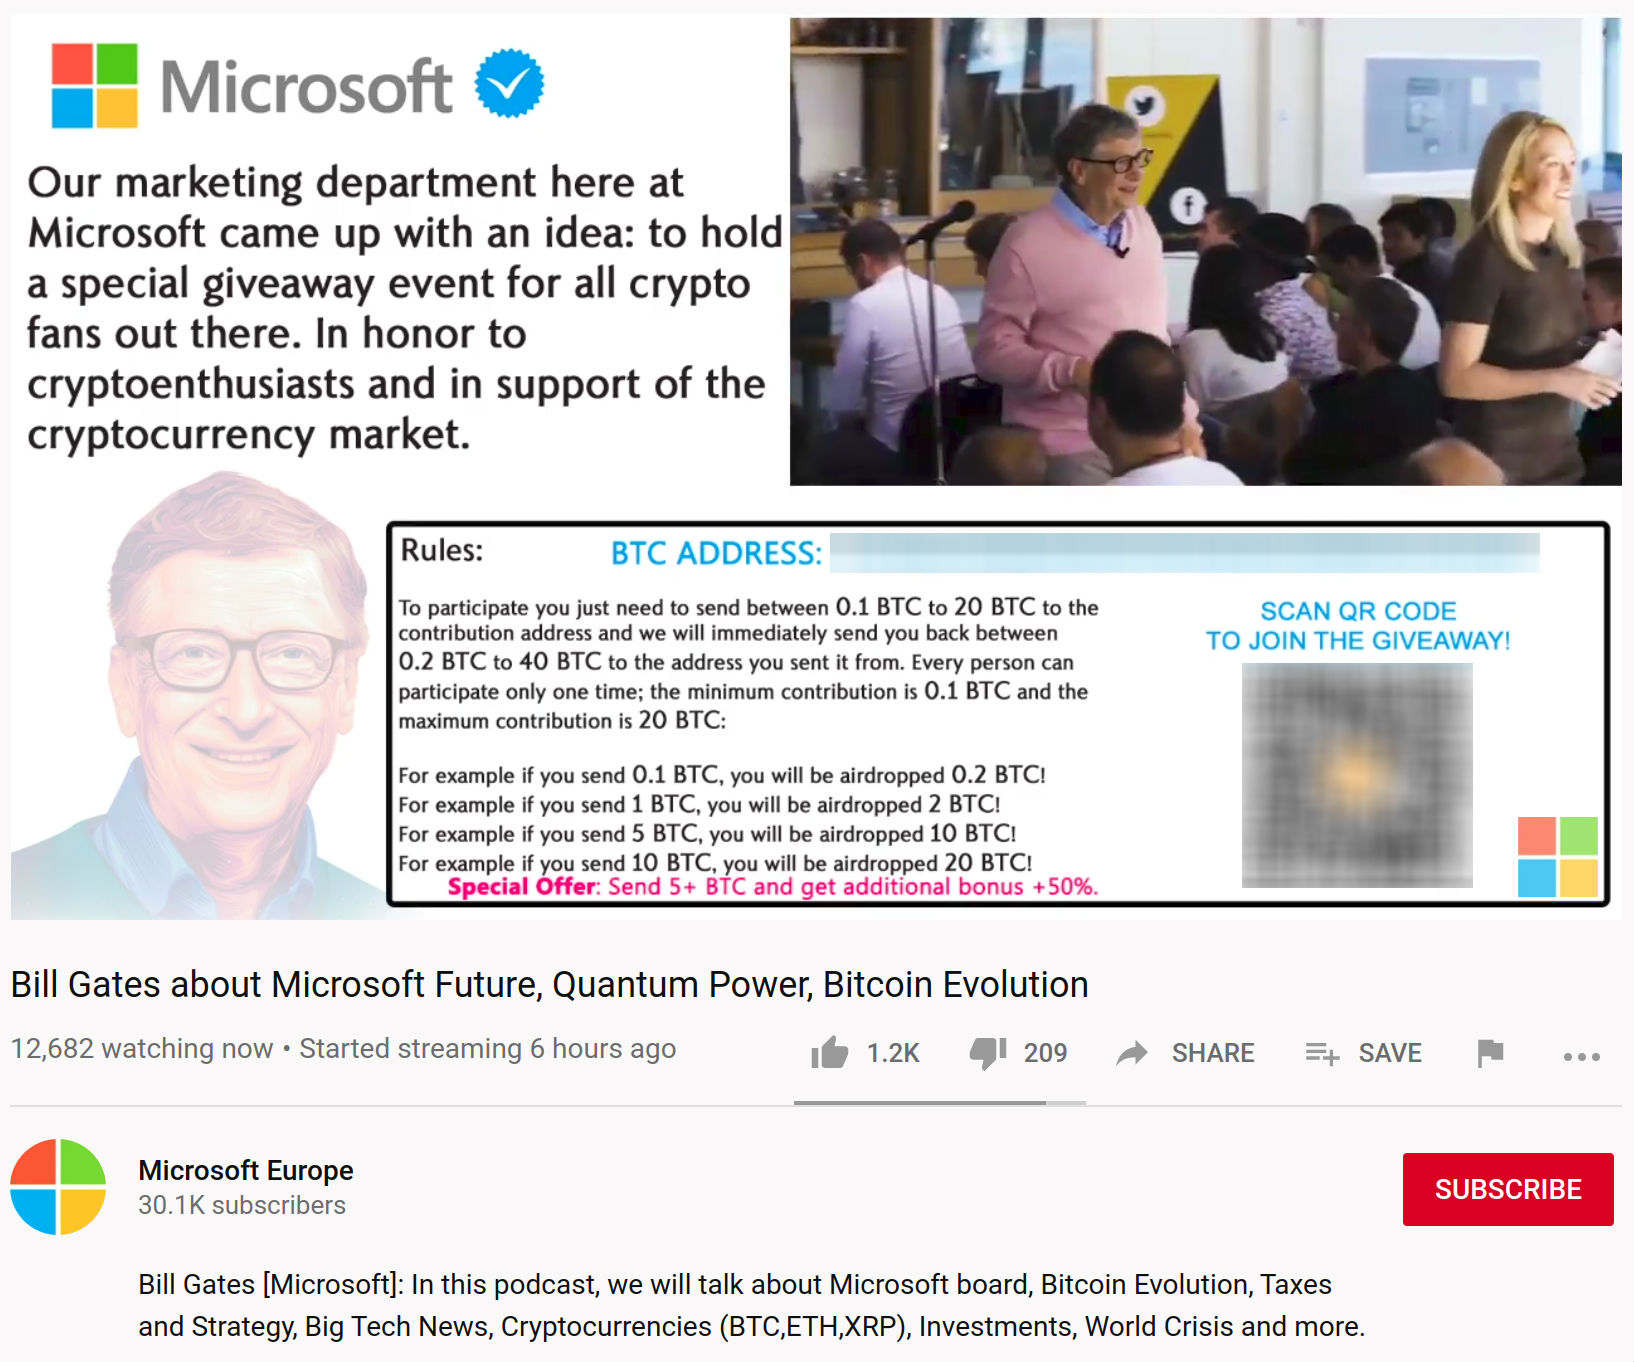 what cryptocurrency did bill gates invest in